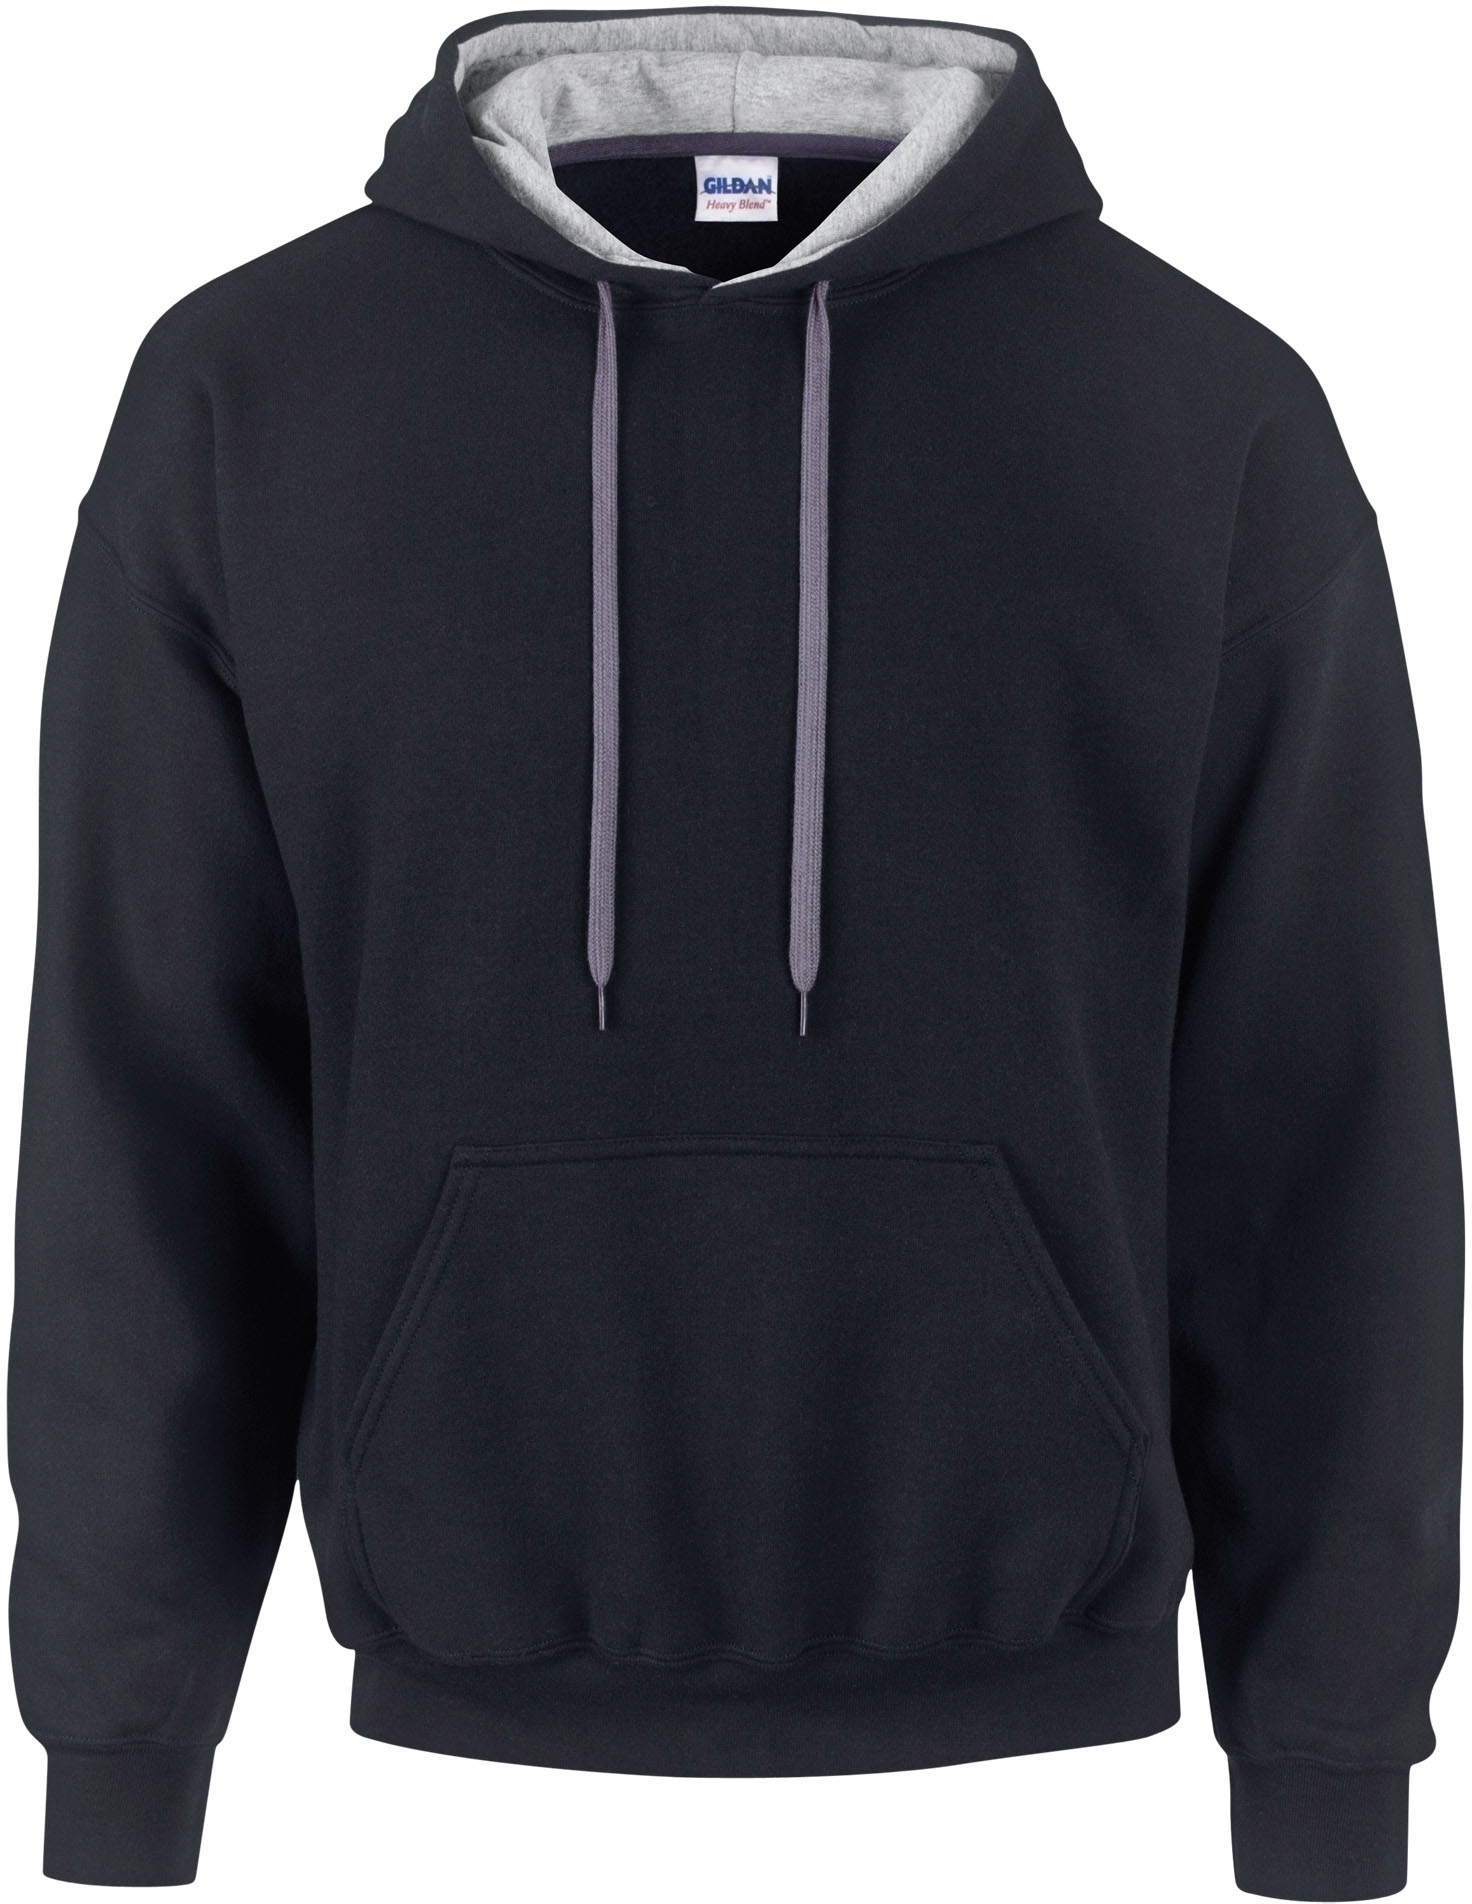 SWEAT-SHIRT CAPUCHE CONSTRASTÉE HEAVY BLEND™ Black / Sport Grey Noir